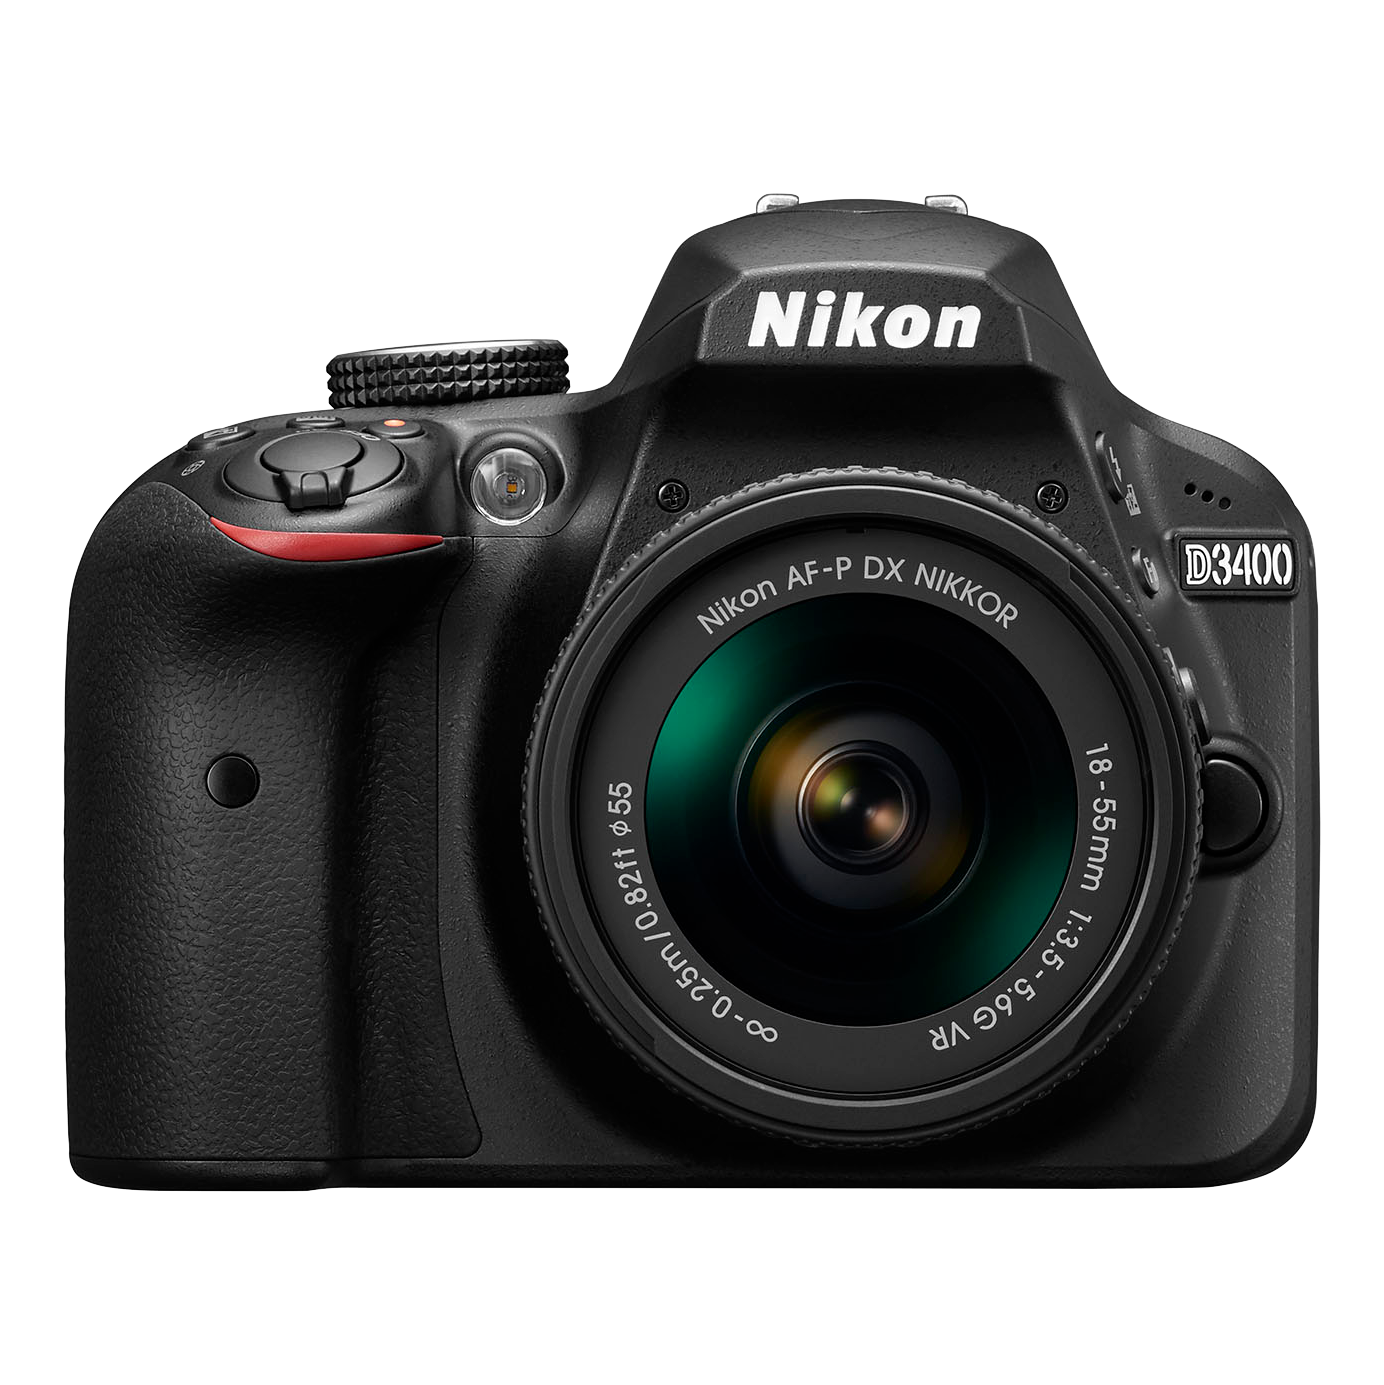 How to take pictures on nikon